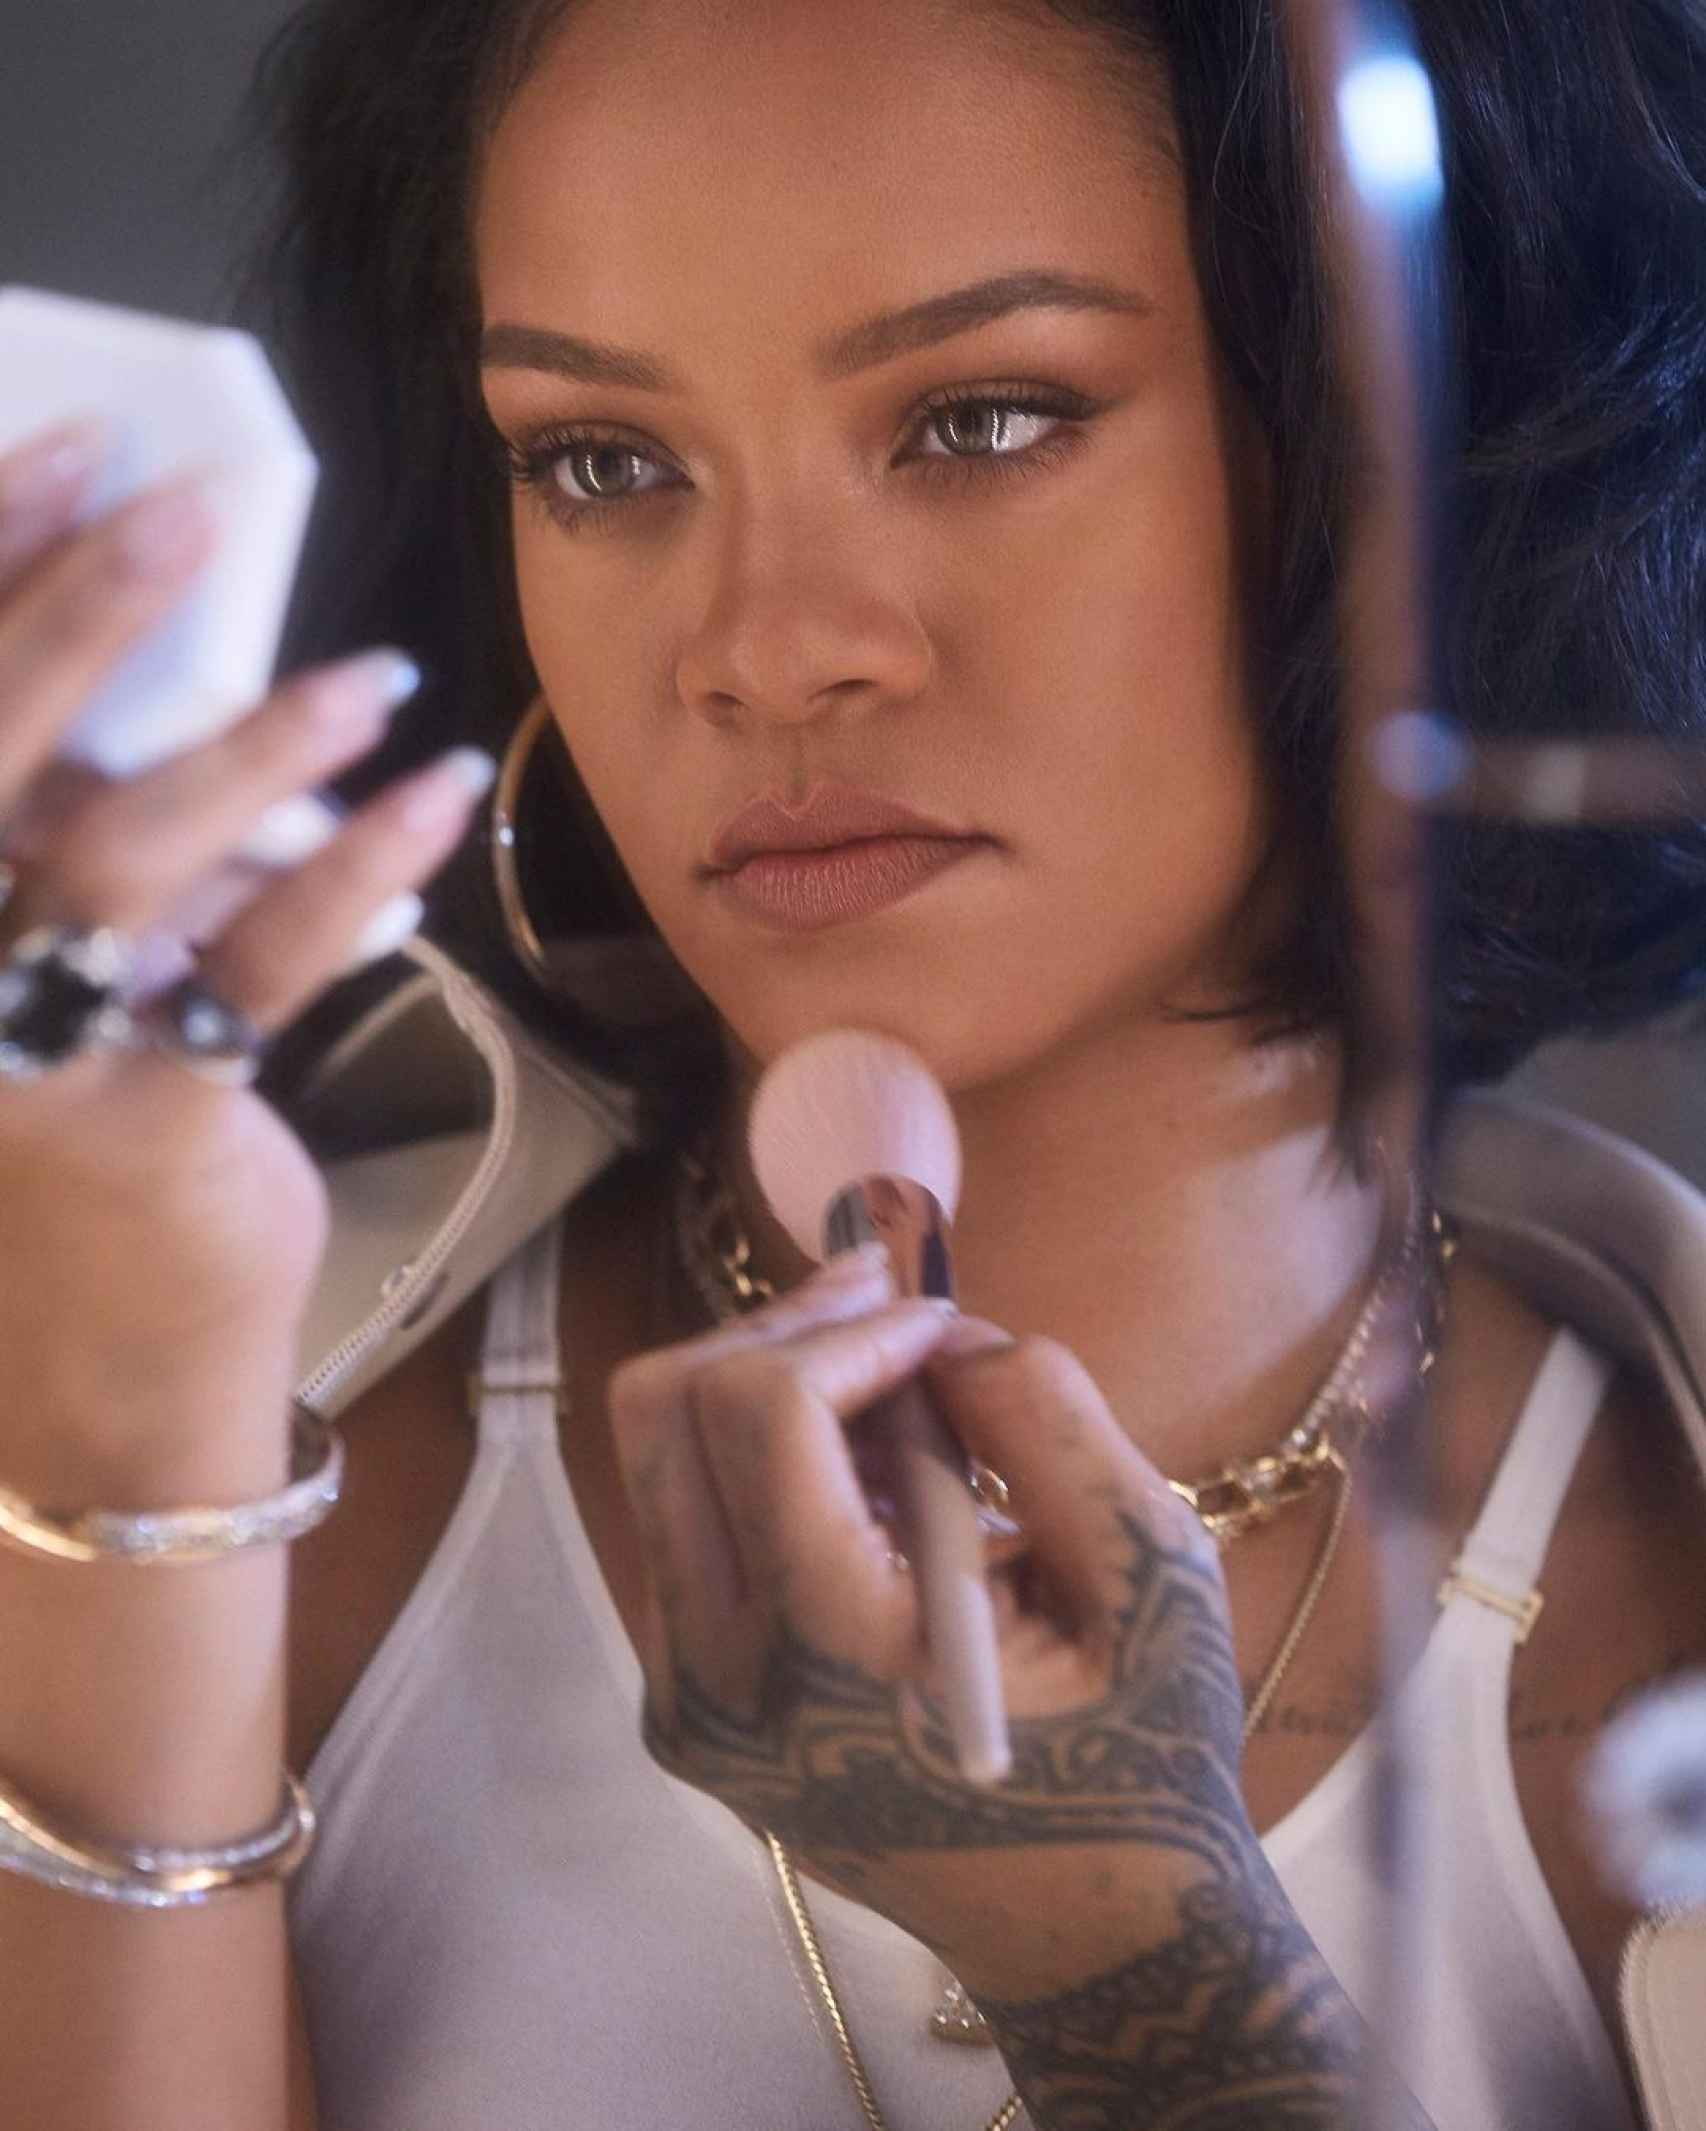 Rihanna, applying makeup with her Fenty Beauty products.